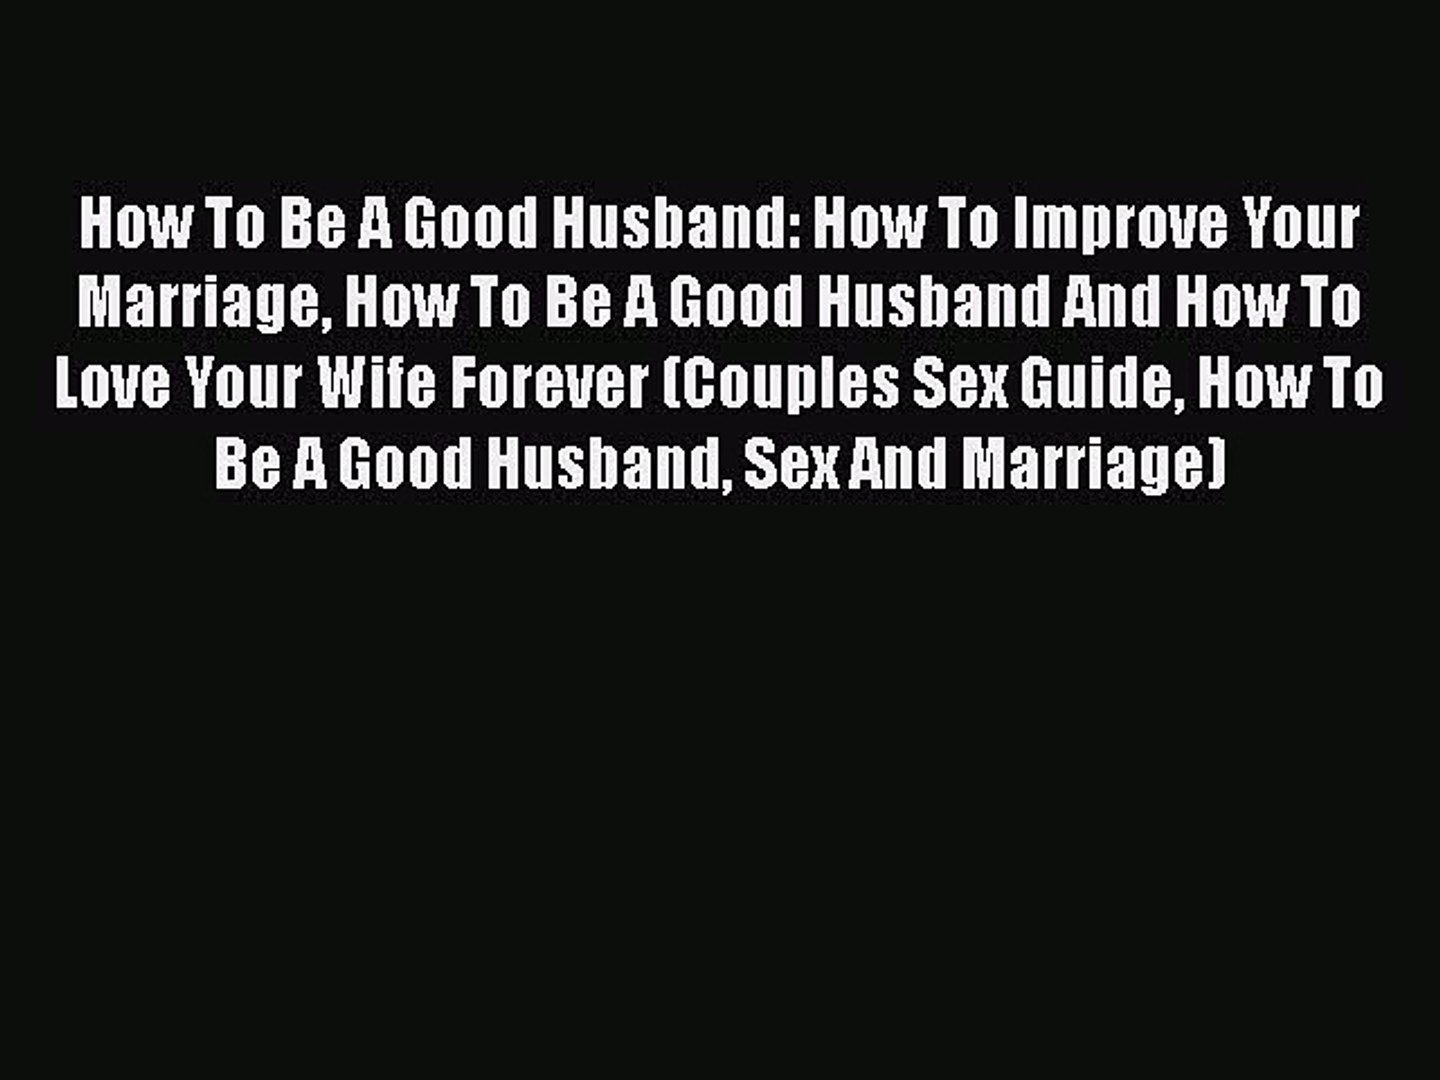 Read How To Be A Good Husband: How To Improve Your Marriage How To Be A Good Husband And How